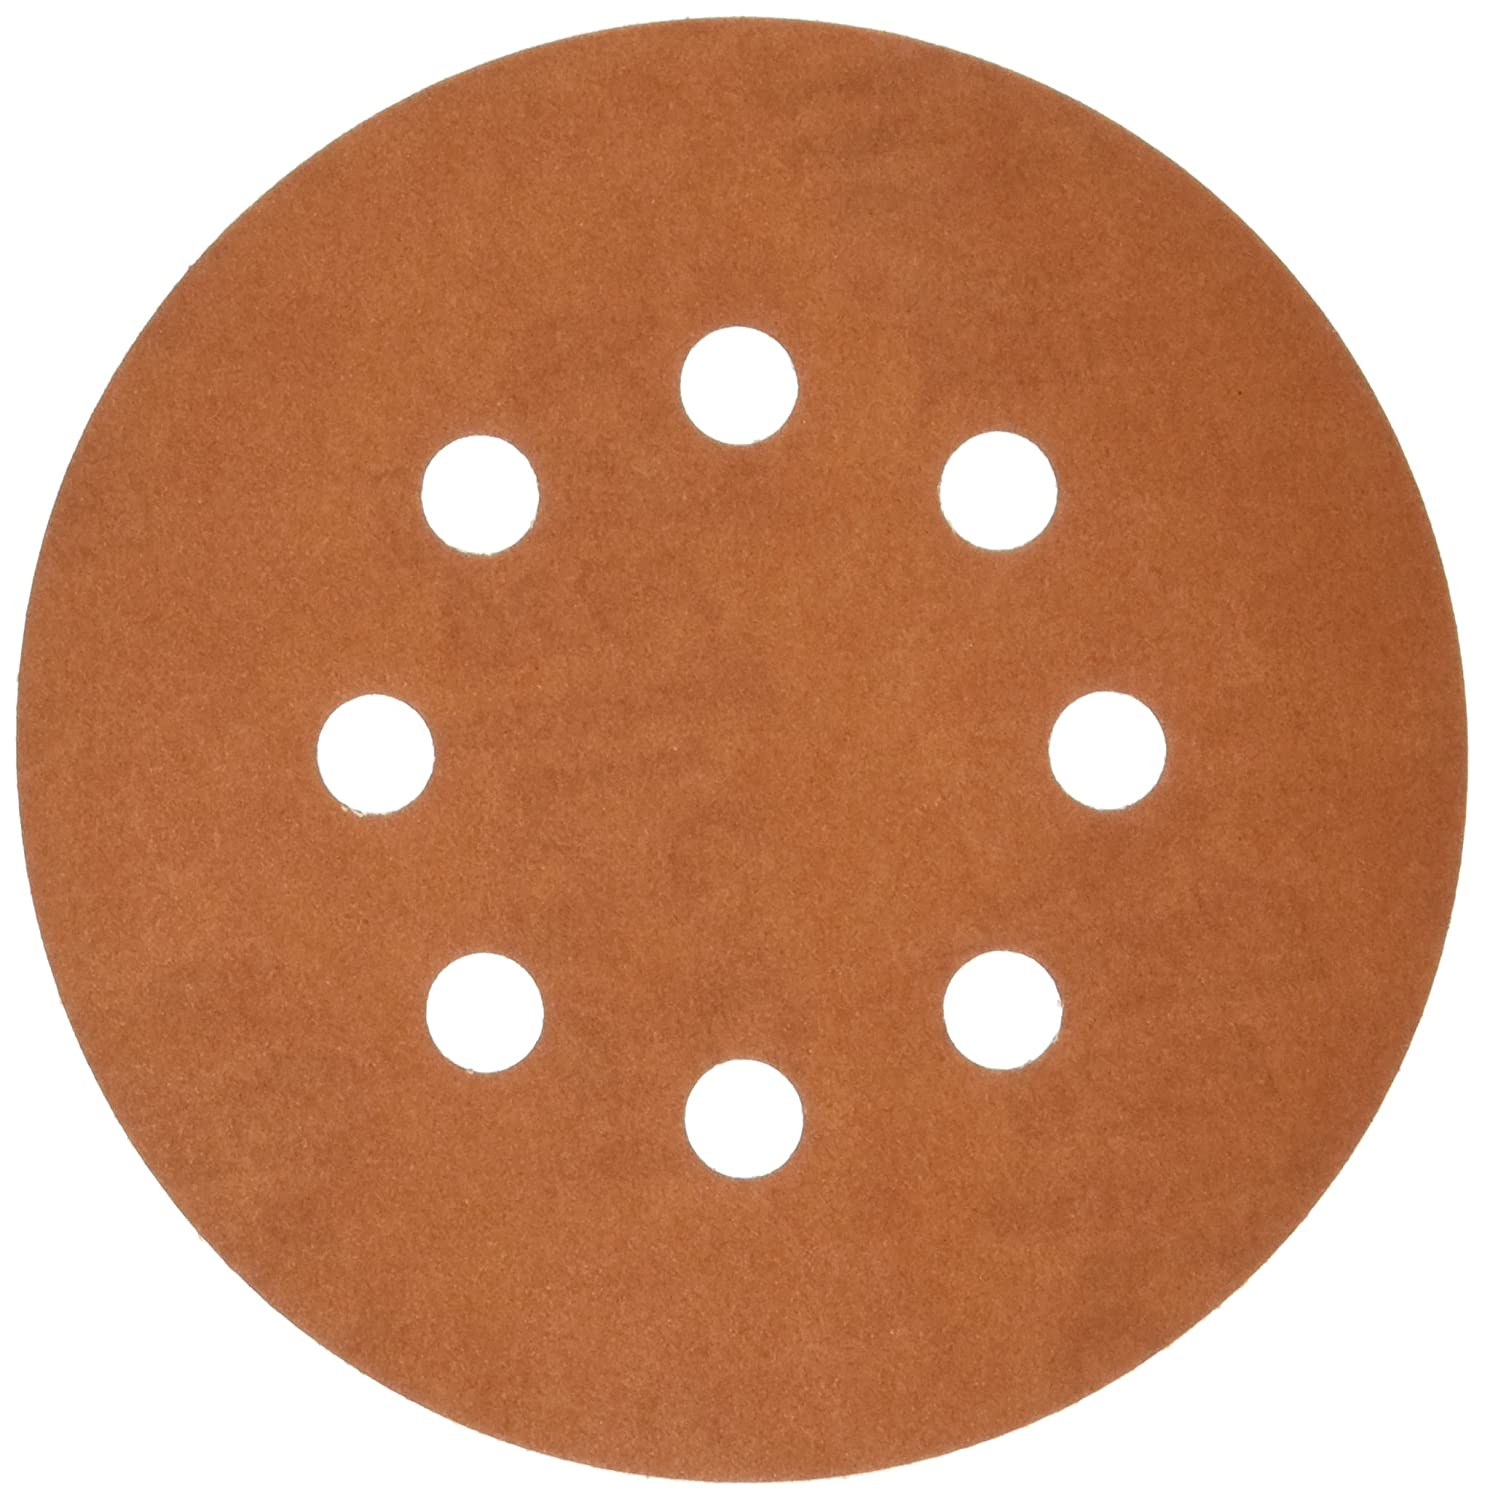 5-Inch ALI INDUSTRIES 3720 8 Hole Hook and Ladder 320 25 CT Grit Disc 5-Pack